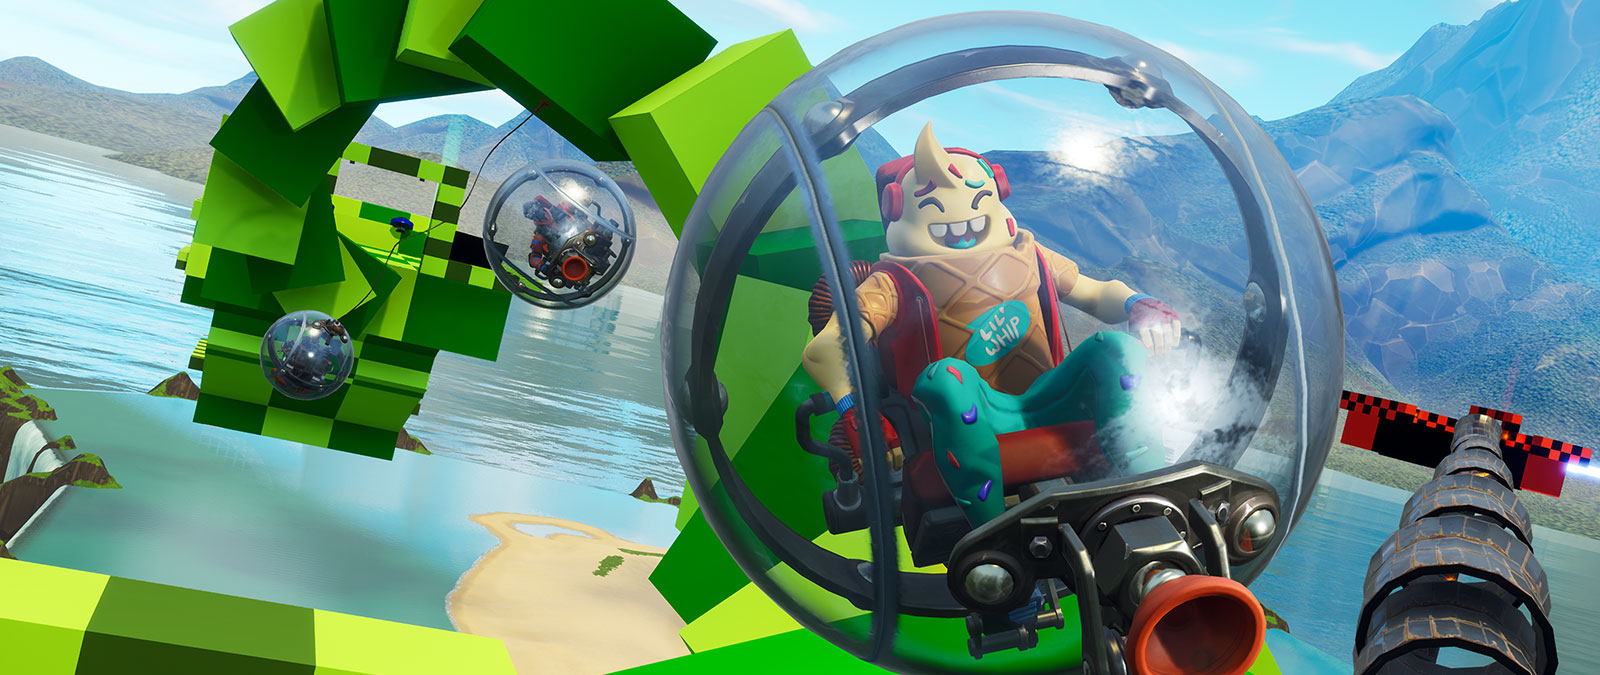 Characters in hamster balls over water.